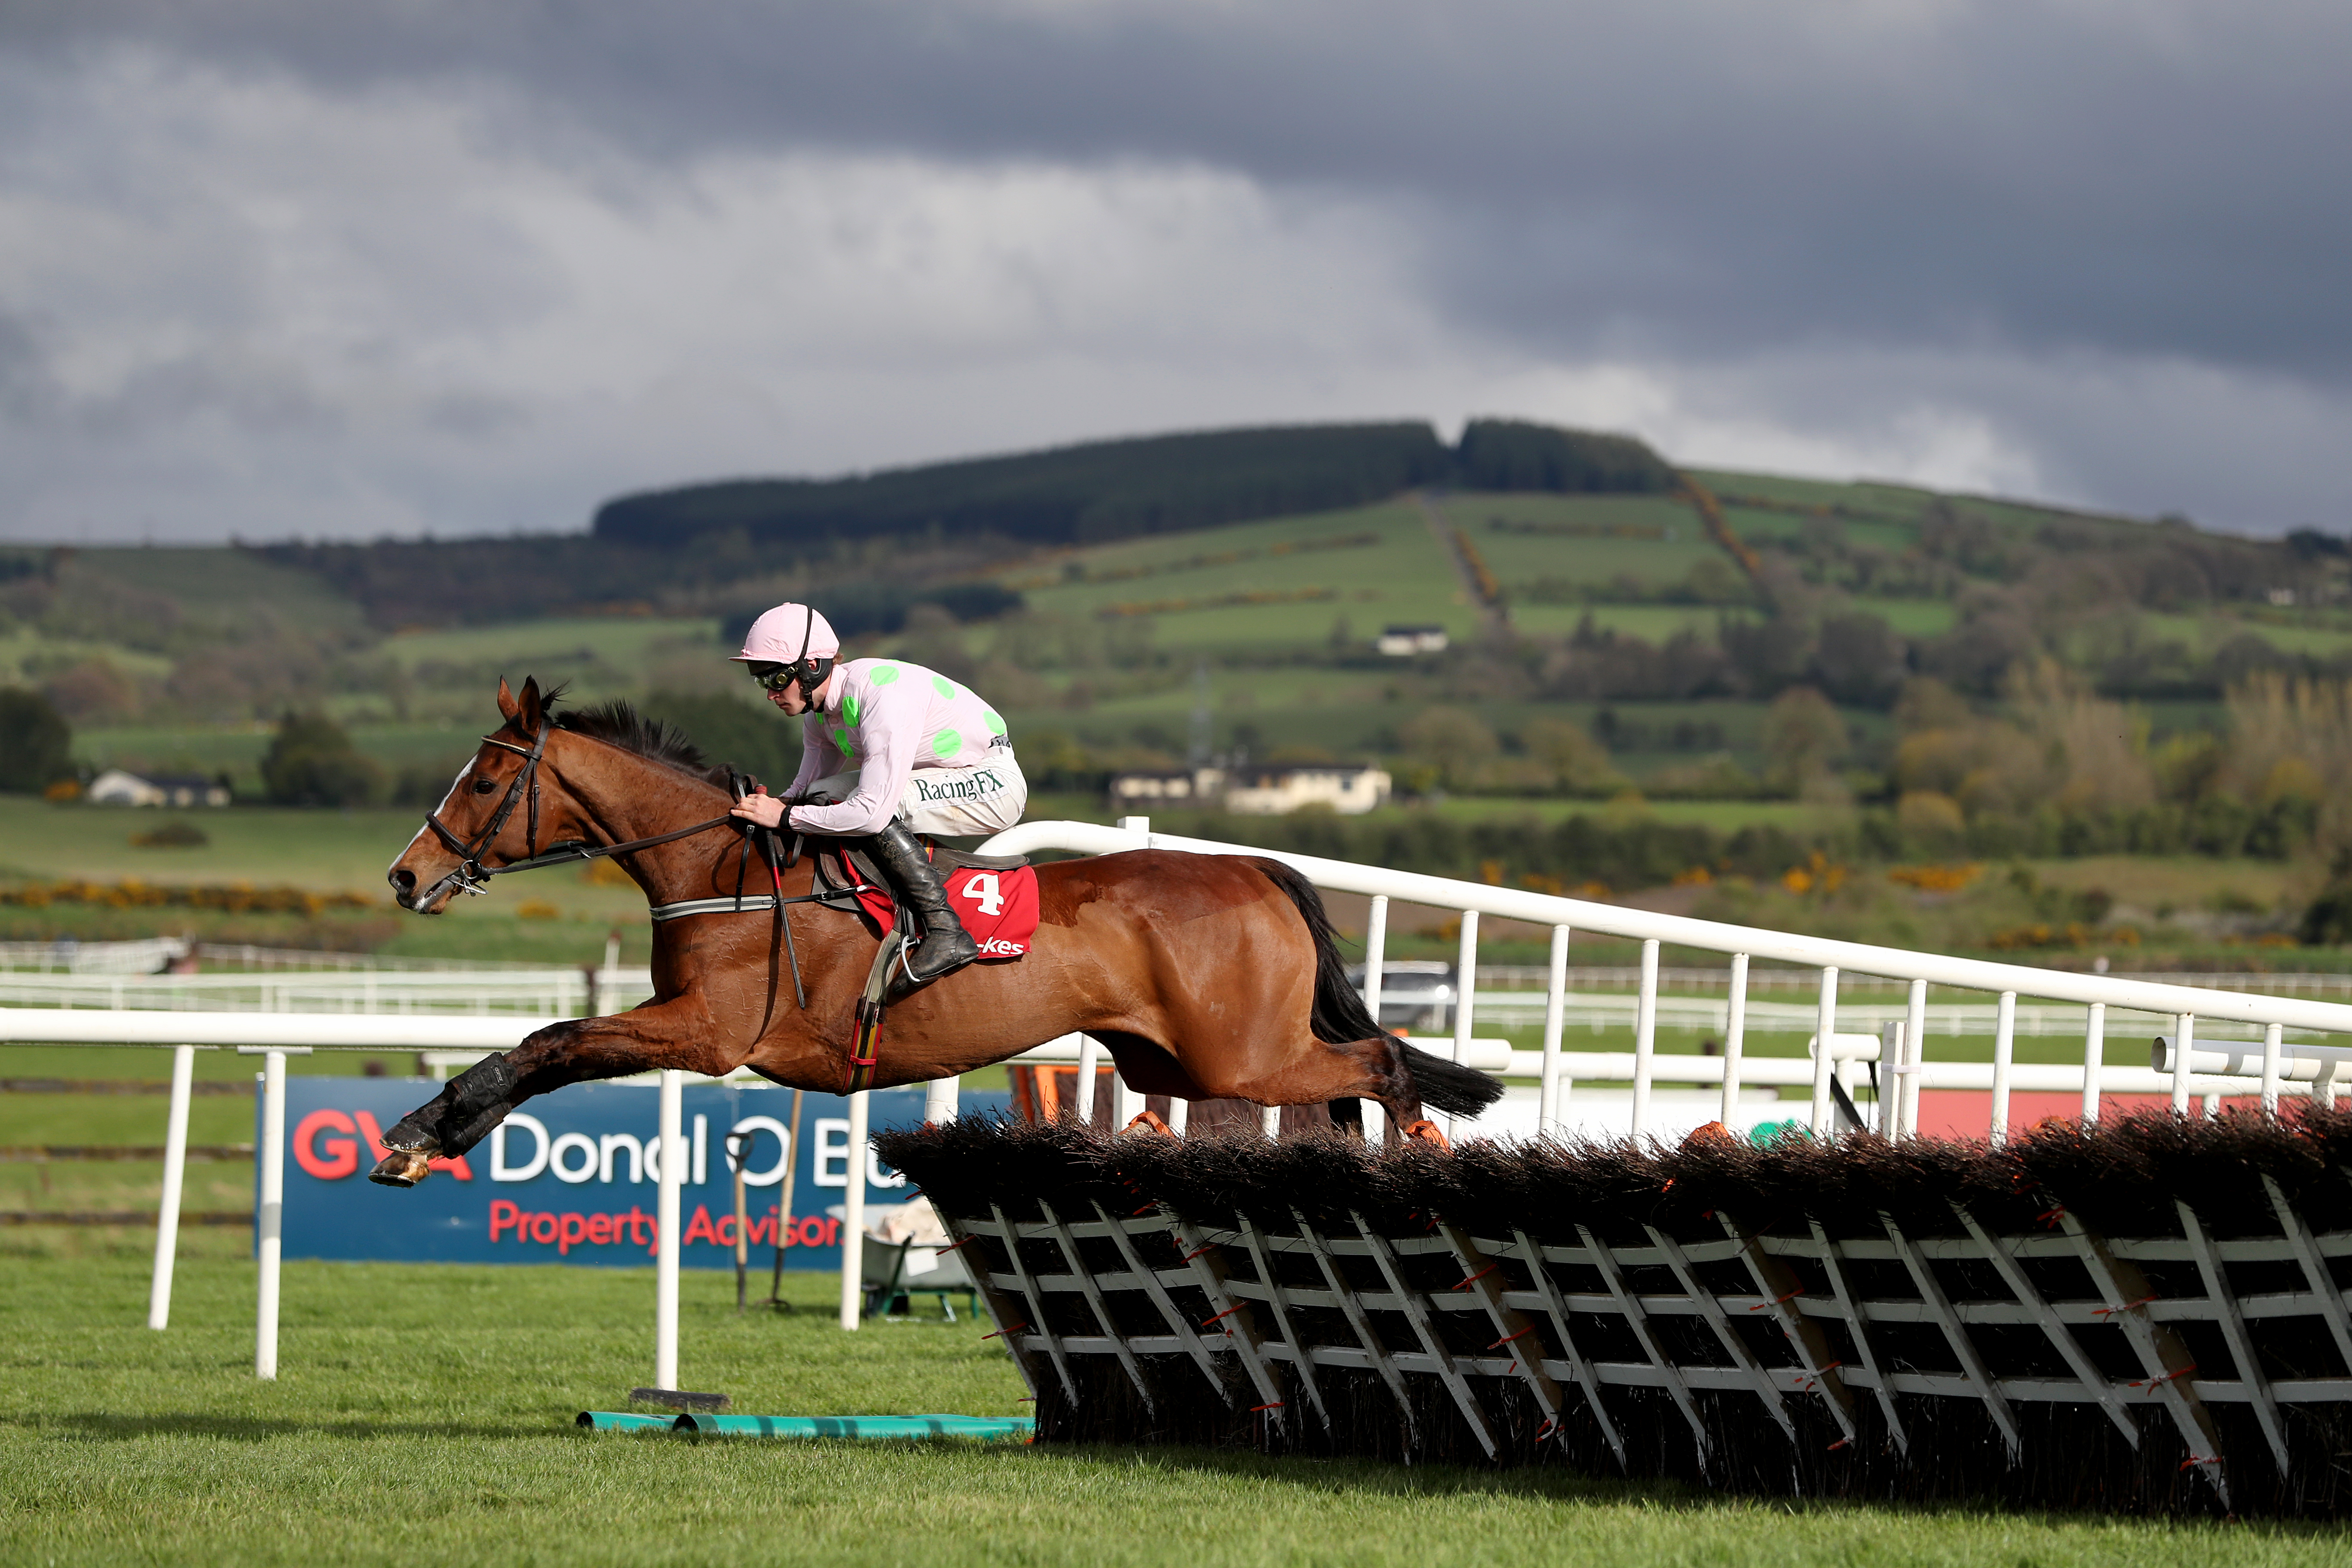 Faugheen looked majestic at Punchestown in April